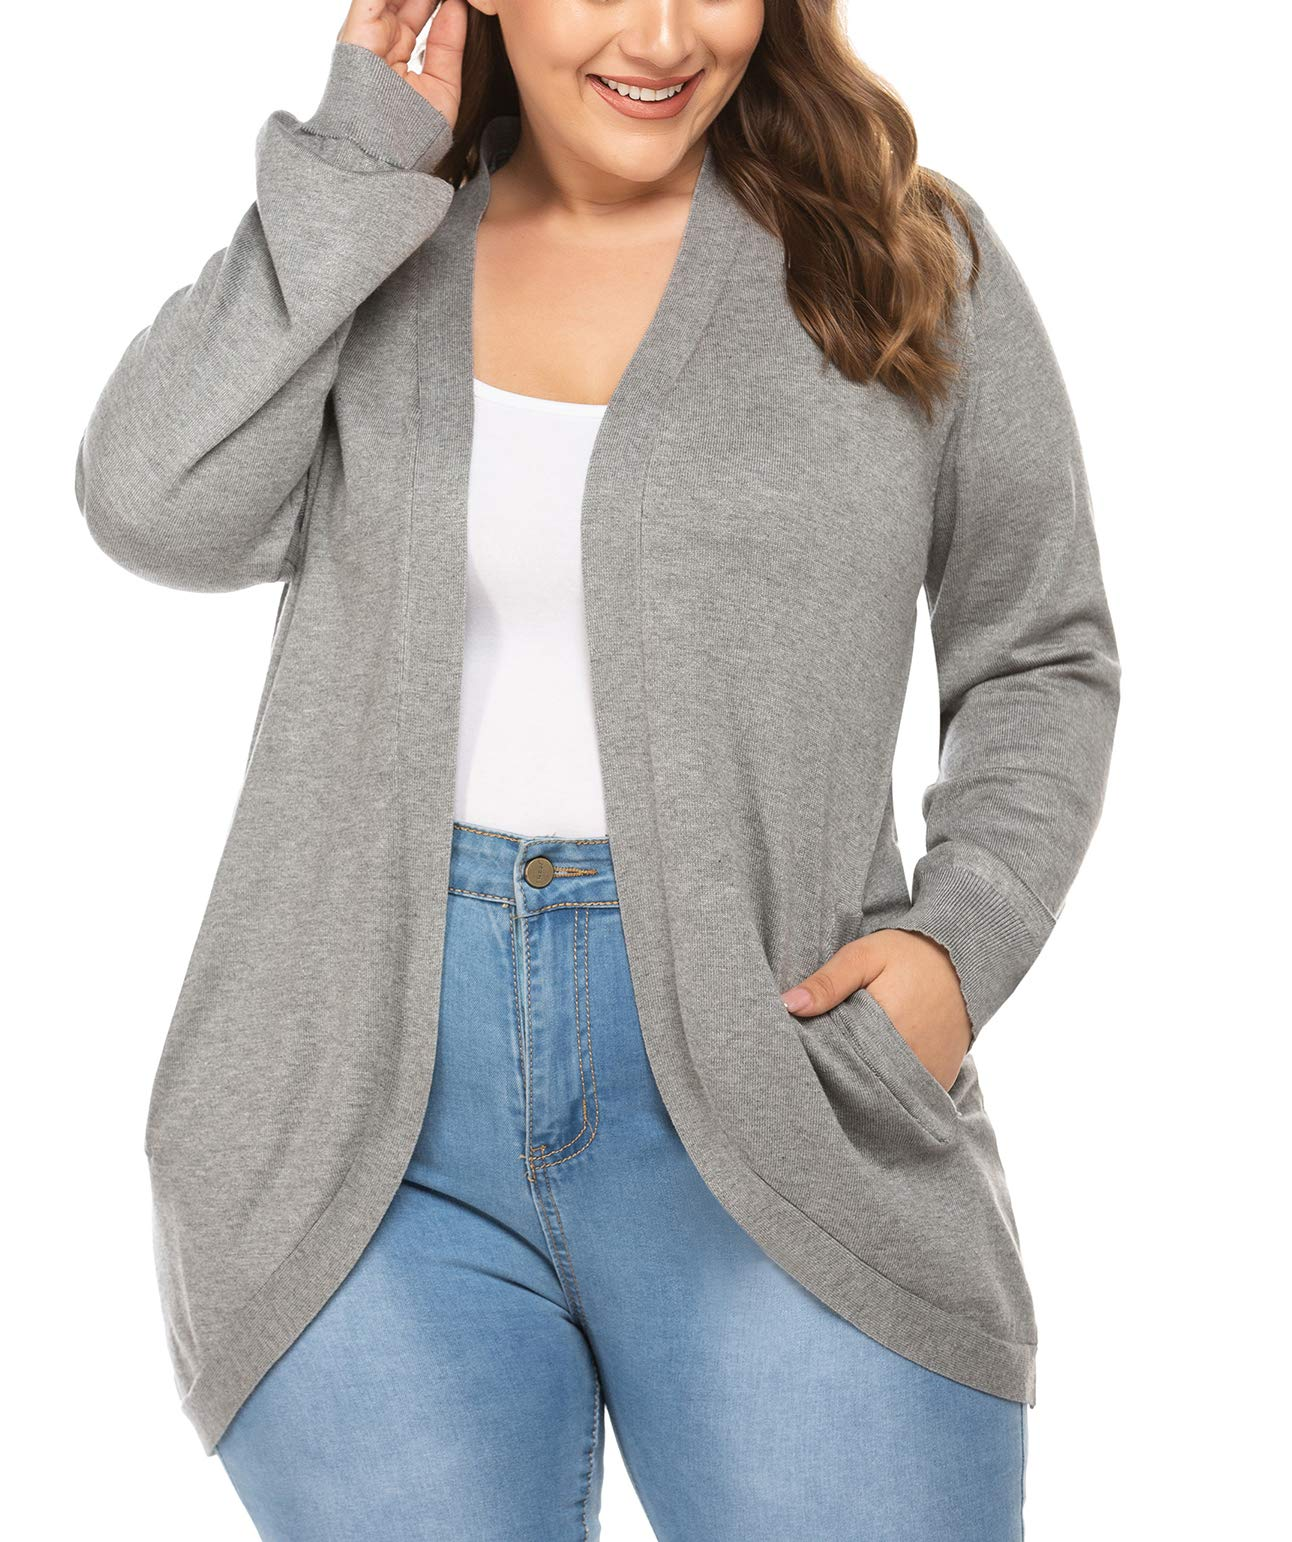 Gemijack Womens Plus Size Cardigan Sweaters Open Front Colorblock Long Sleeve Knitted Outwears XL-5XL